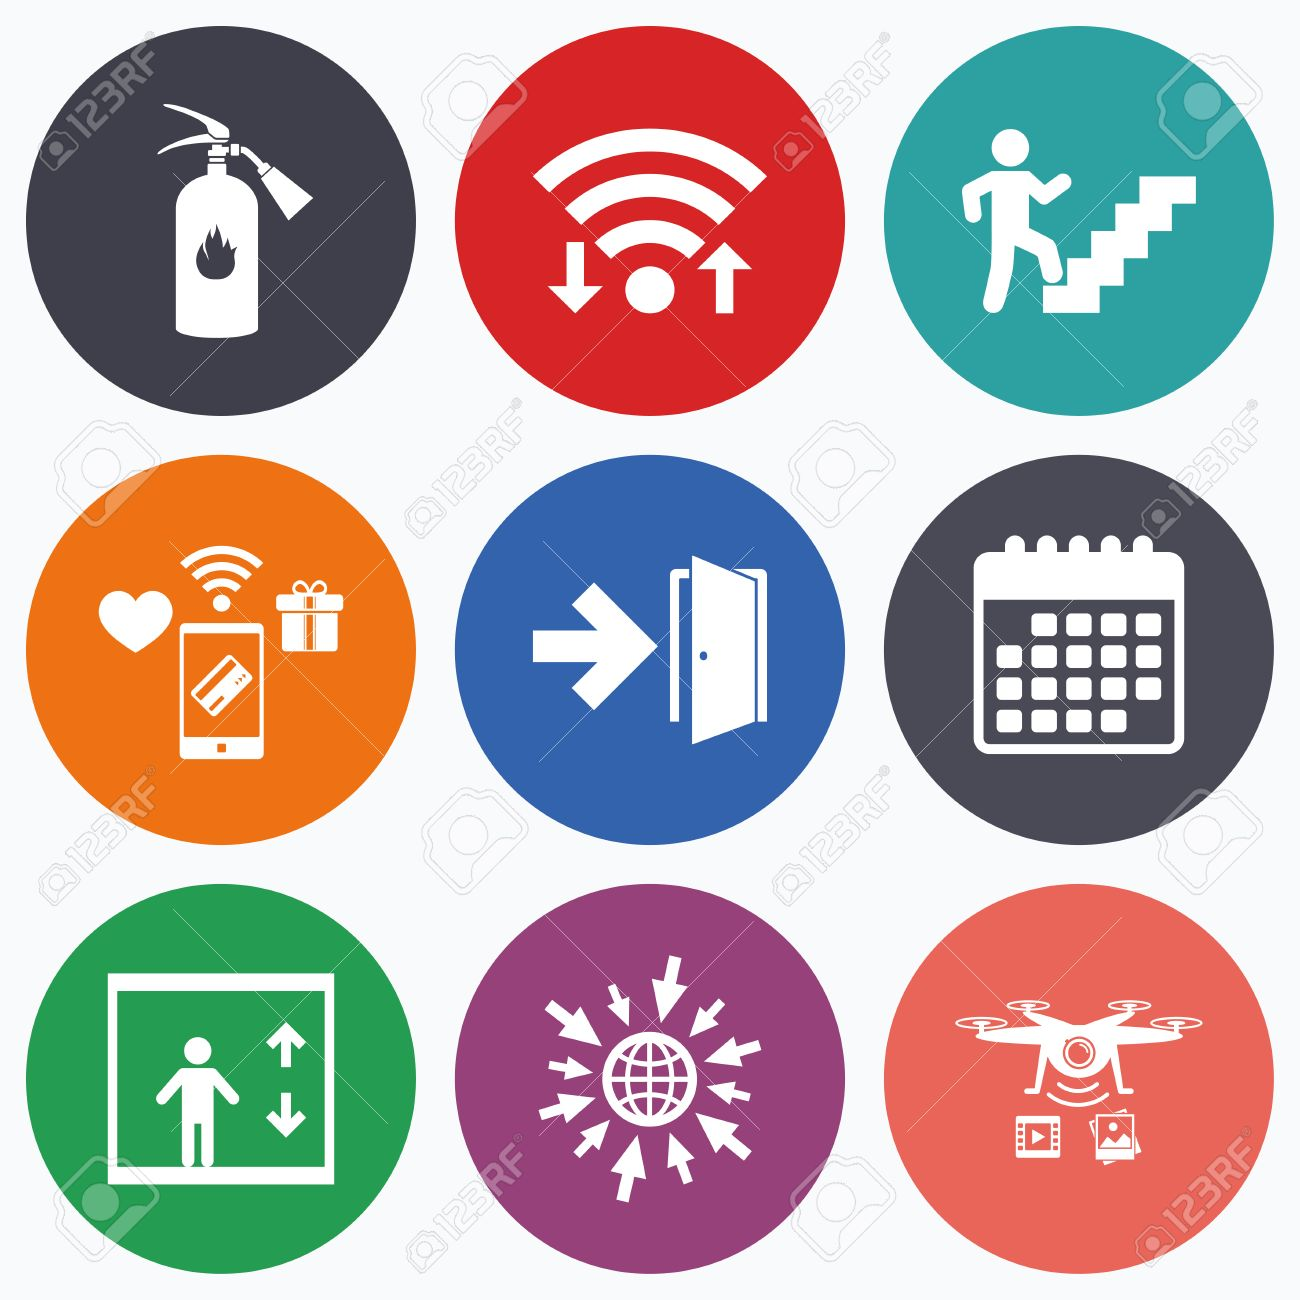 Emergency stop icon clipart emergency off - Emergency Exit Sign Icon Wifi Mobile Payments And Drones Icons Emergency Exit Icons